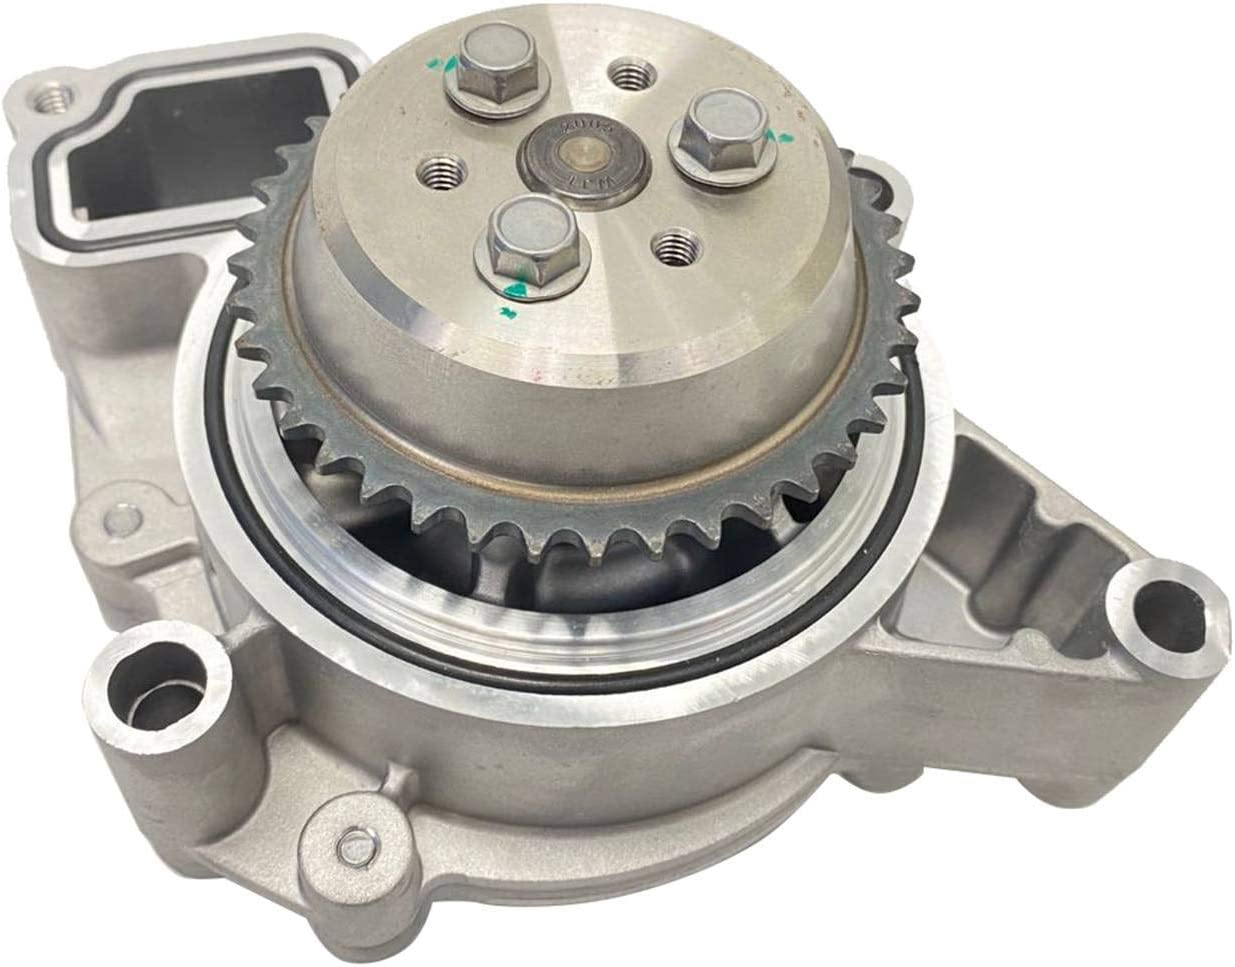 Bapmic 12591894 Engine Water Pump Replacement Max 68% OFF for Buick Finally resale start Gasket w